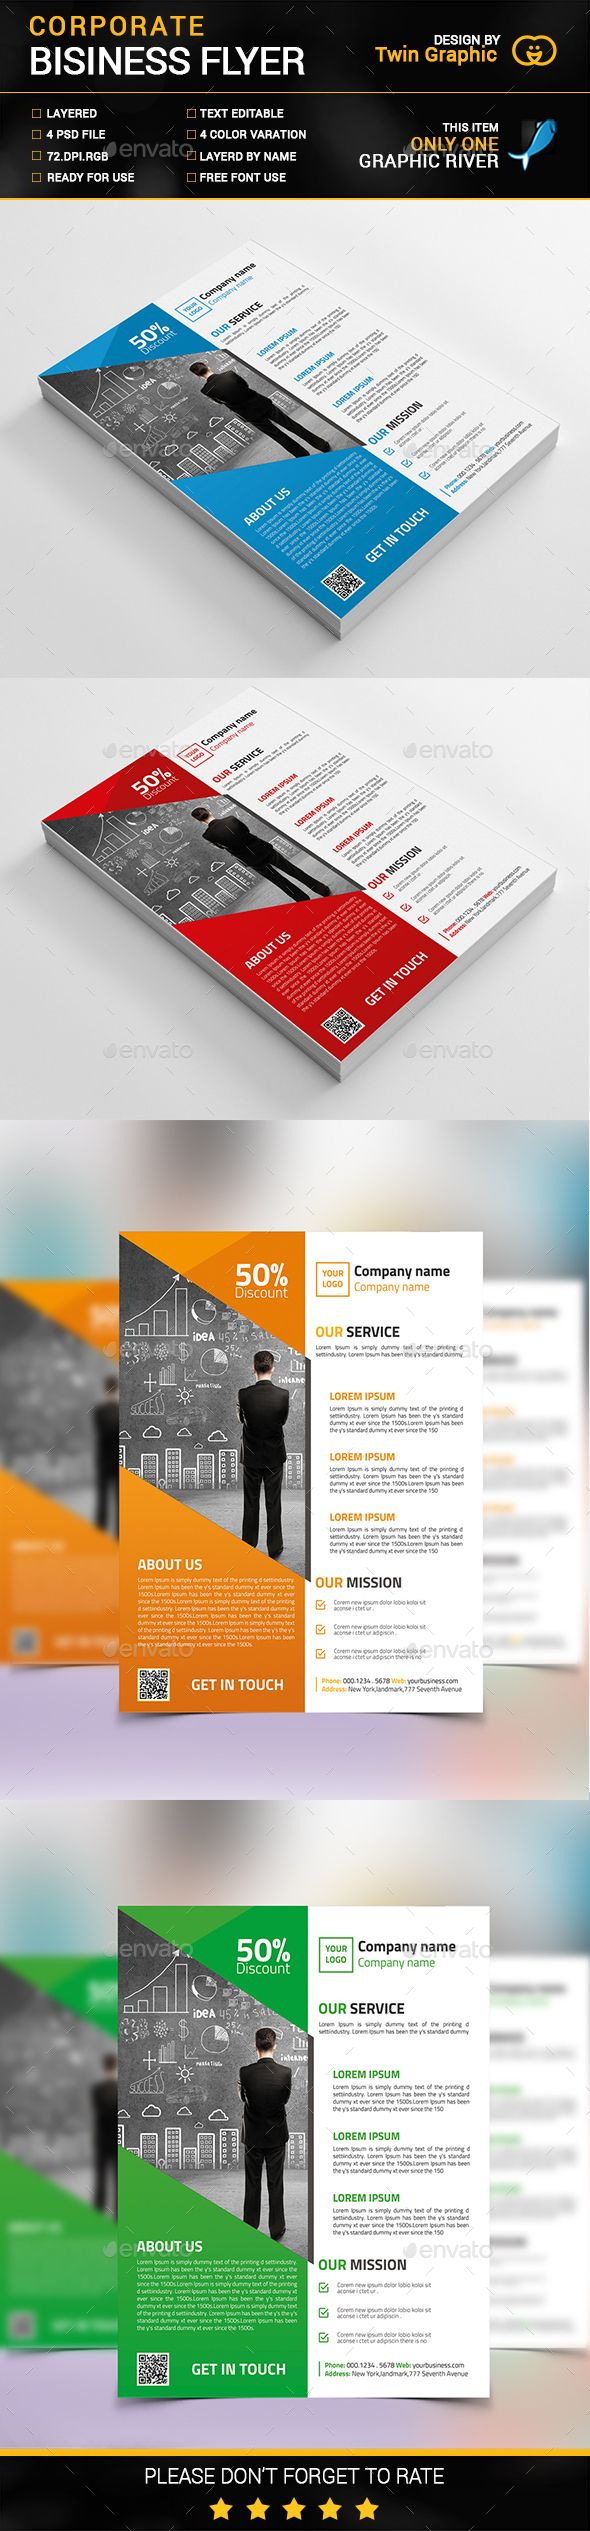 Corporate Business Flyer Design Template PSD. Download here: http://graphicriver.net/item/corporate-business-flyer-design/14959159?ref=ksioks